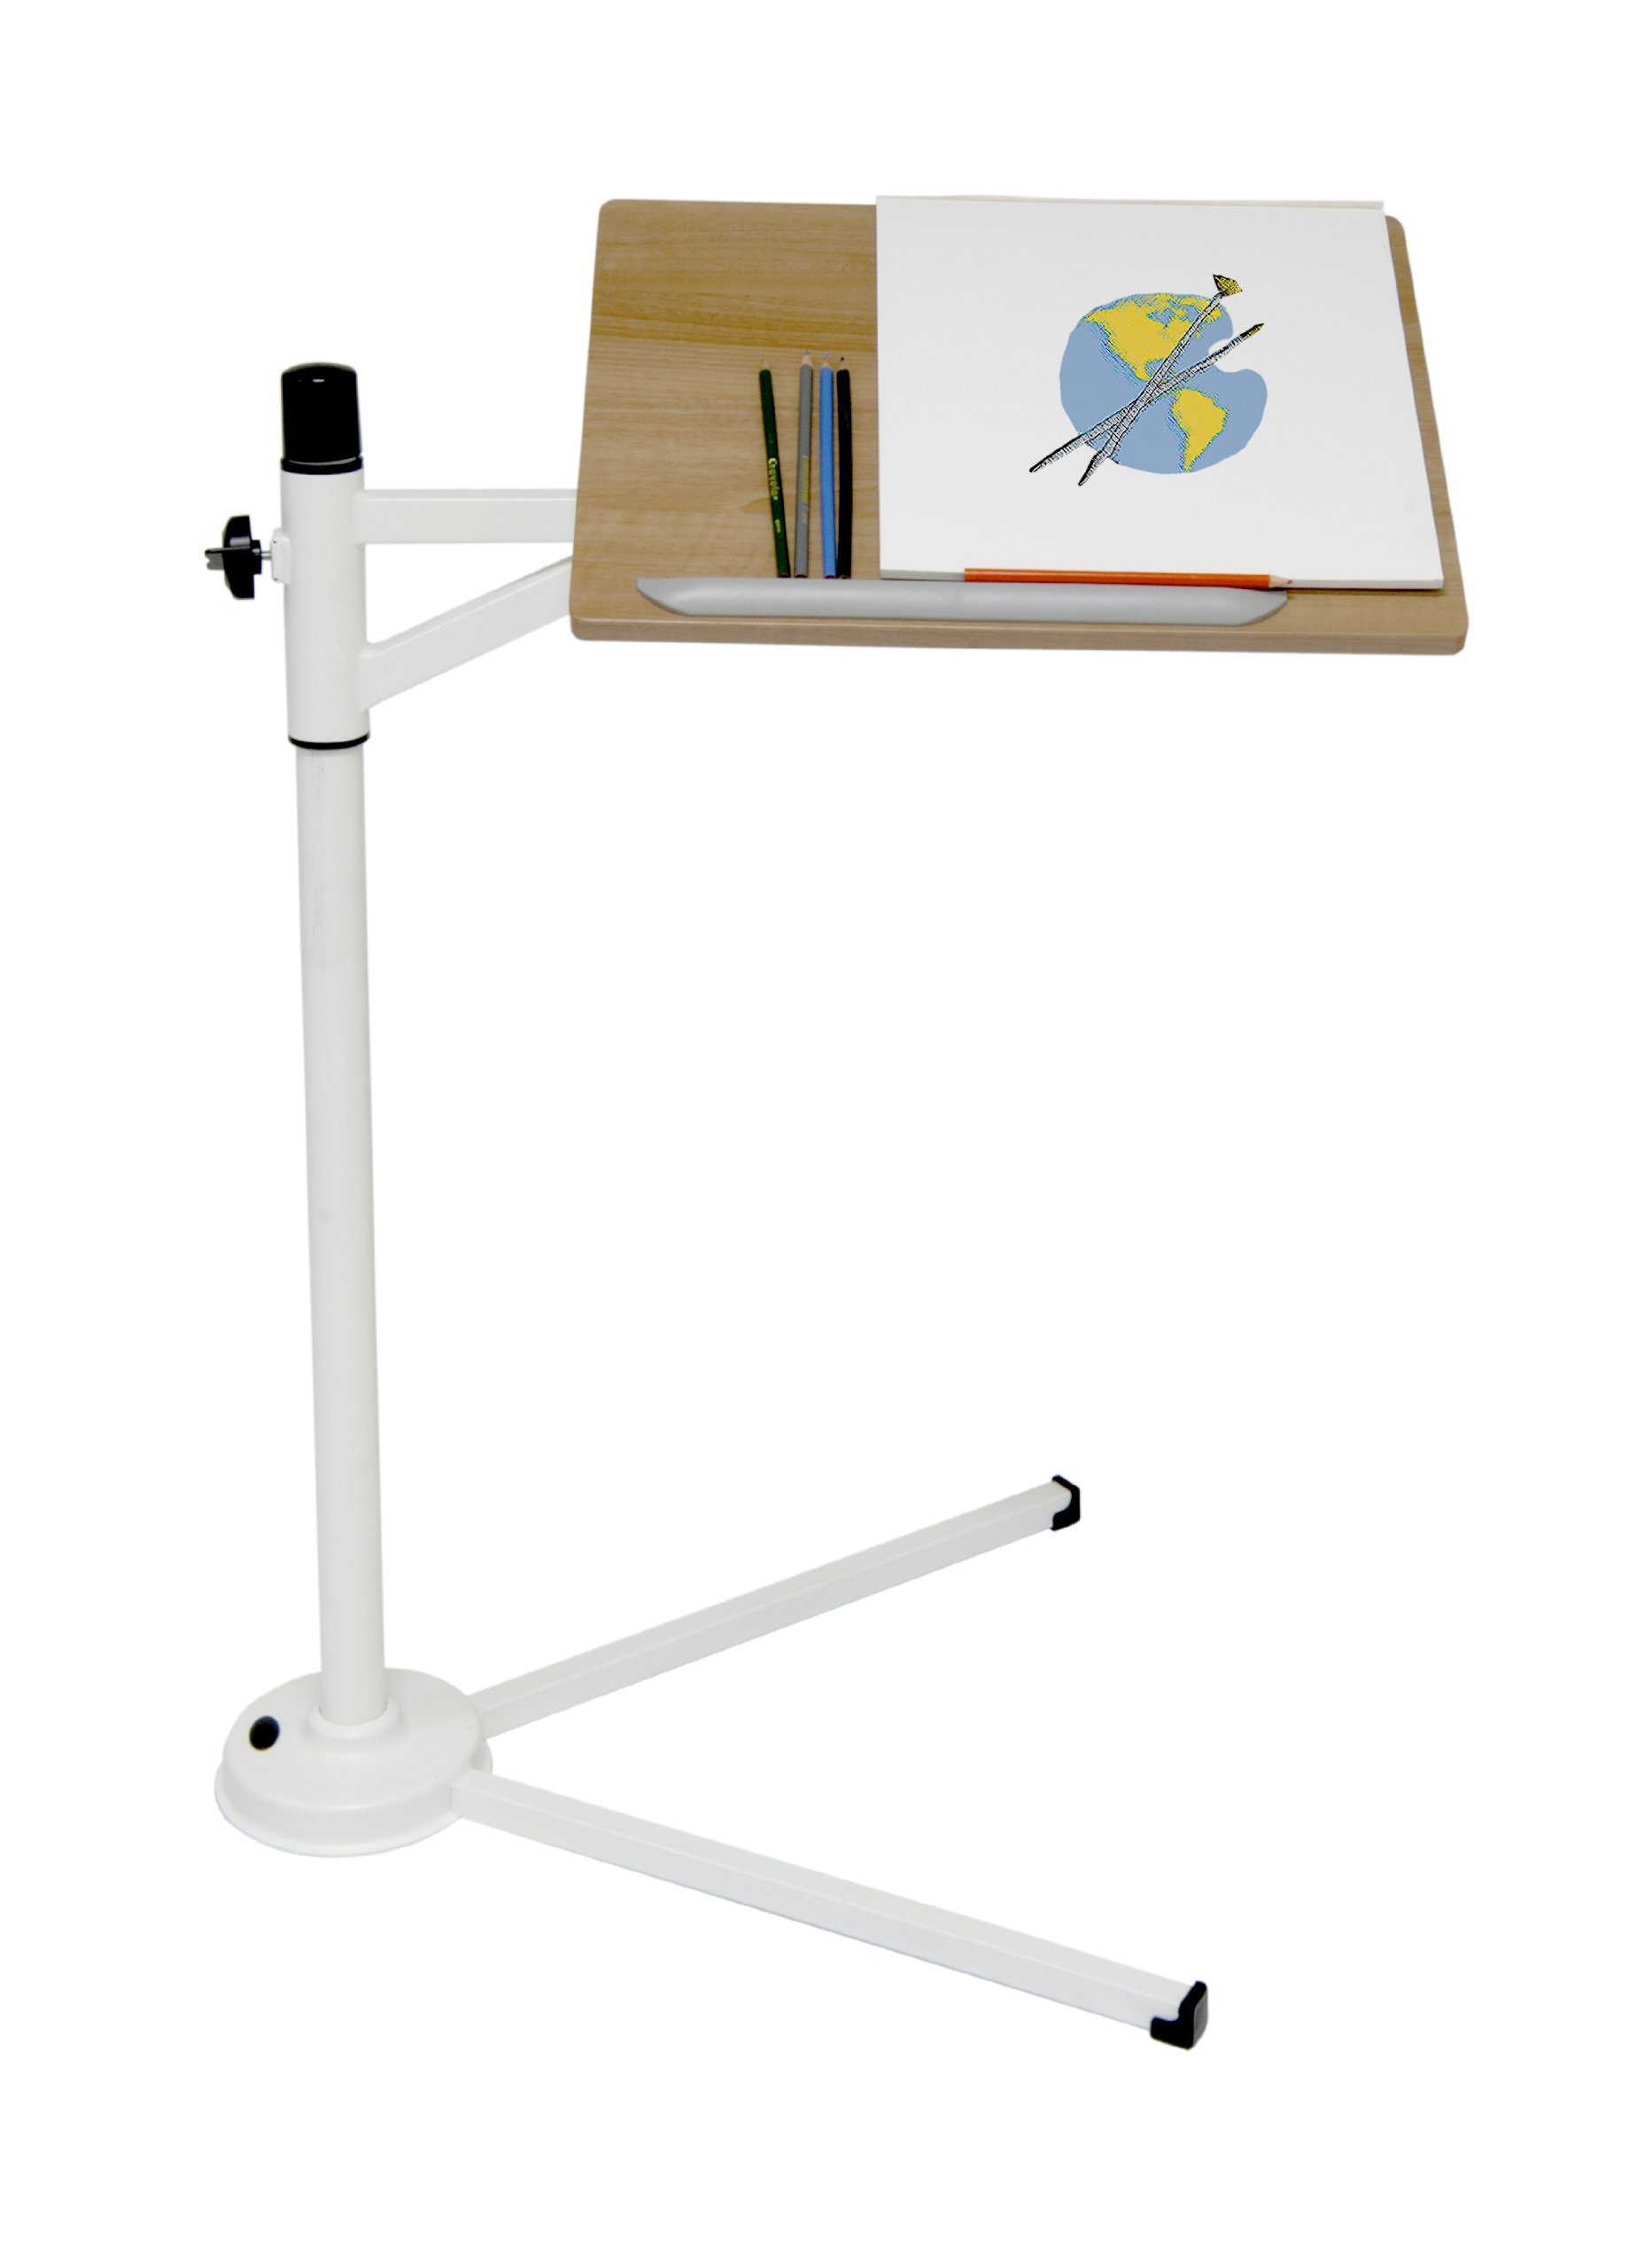 Calico Designs 51211 Calico Tech Stand with Maple Top, White